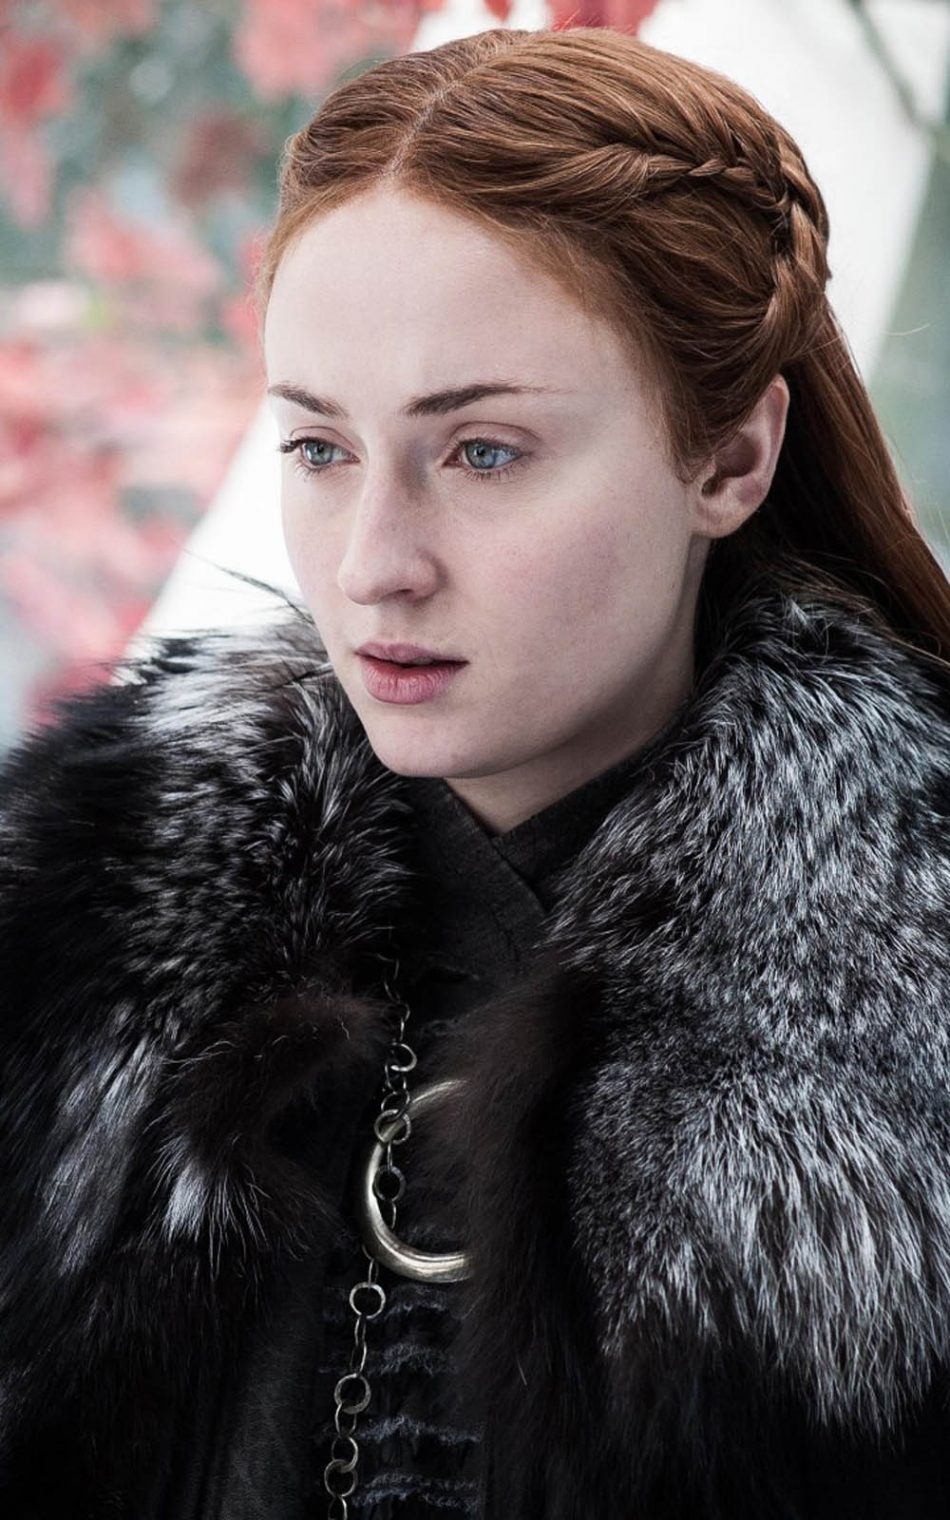 Sophie Turner In Game Of Thrones S7 HD Mobile Wallpaper